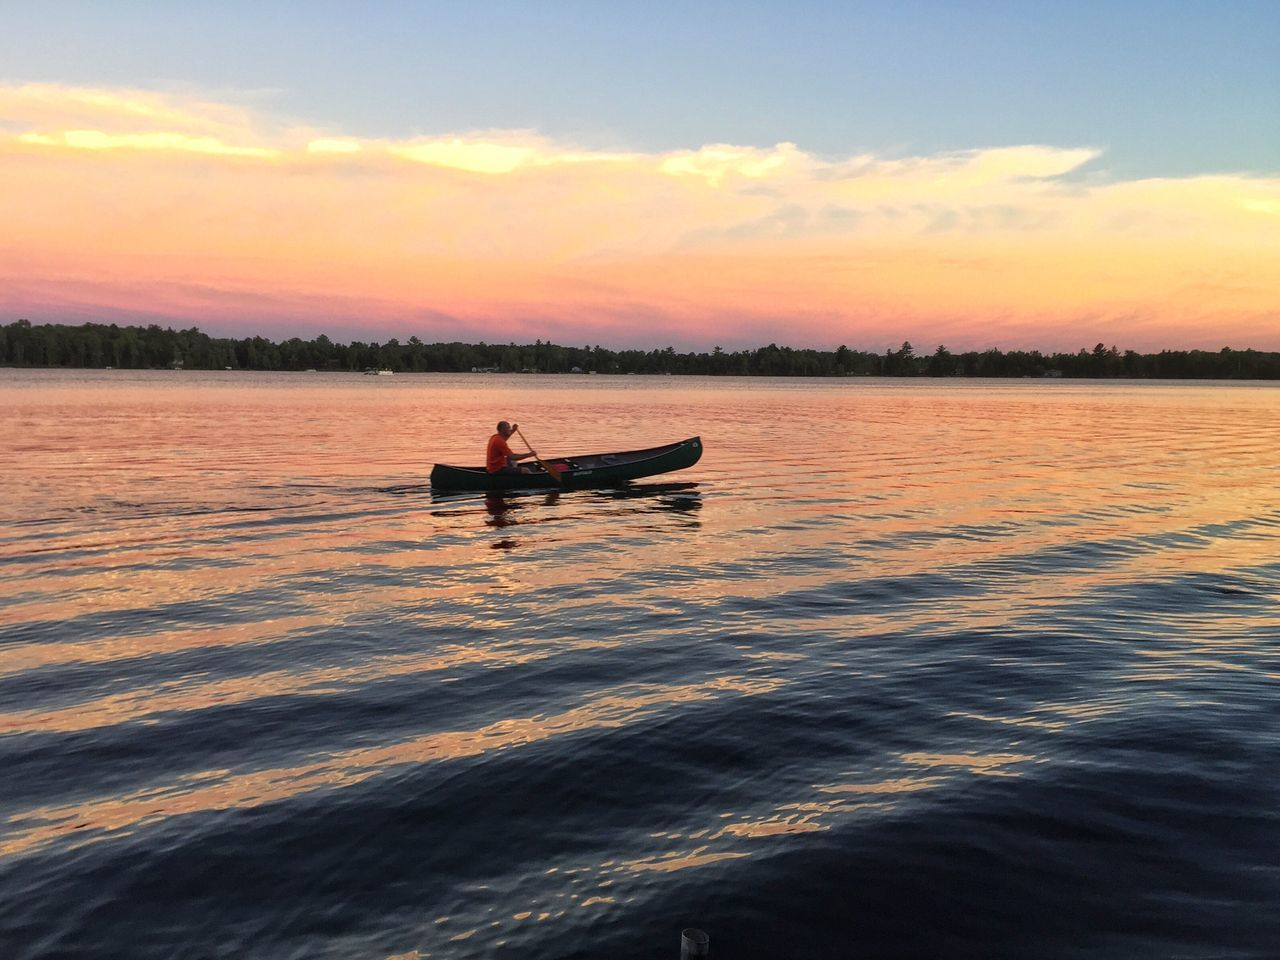 Evening paddle EyeEm Nature Lover Iphoneonly Water Canoe Nature Summer Sunset Taking Photos